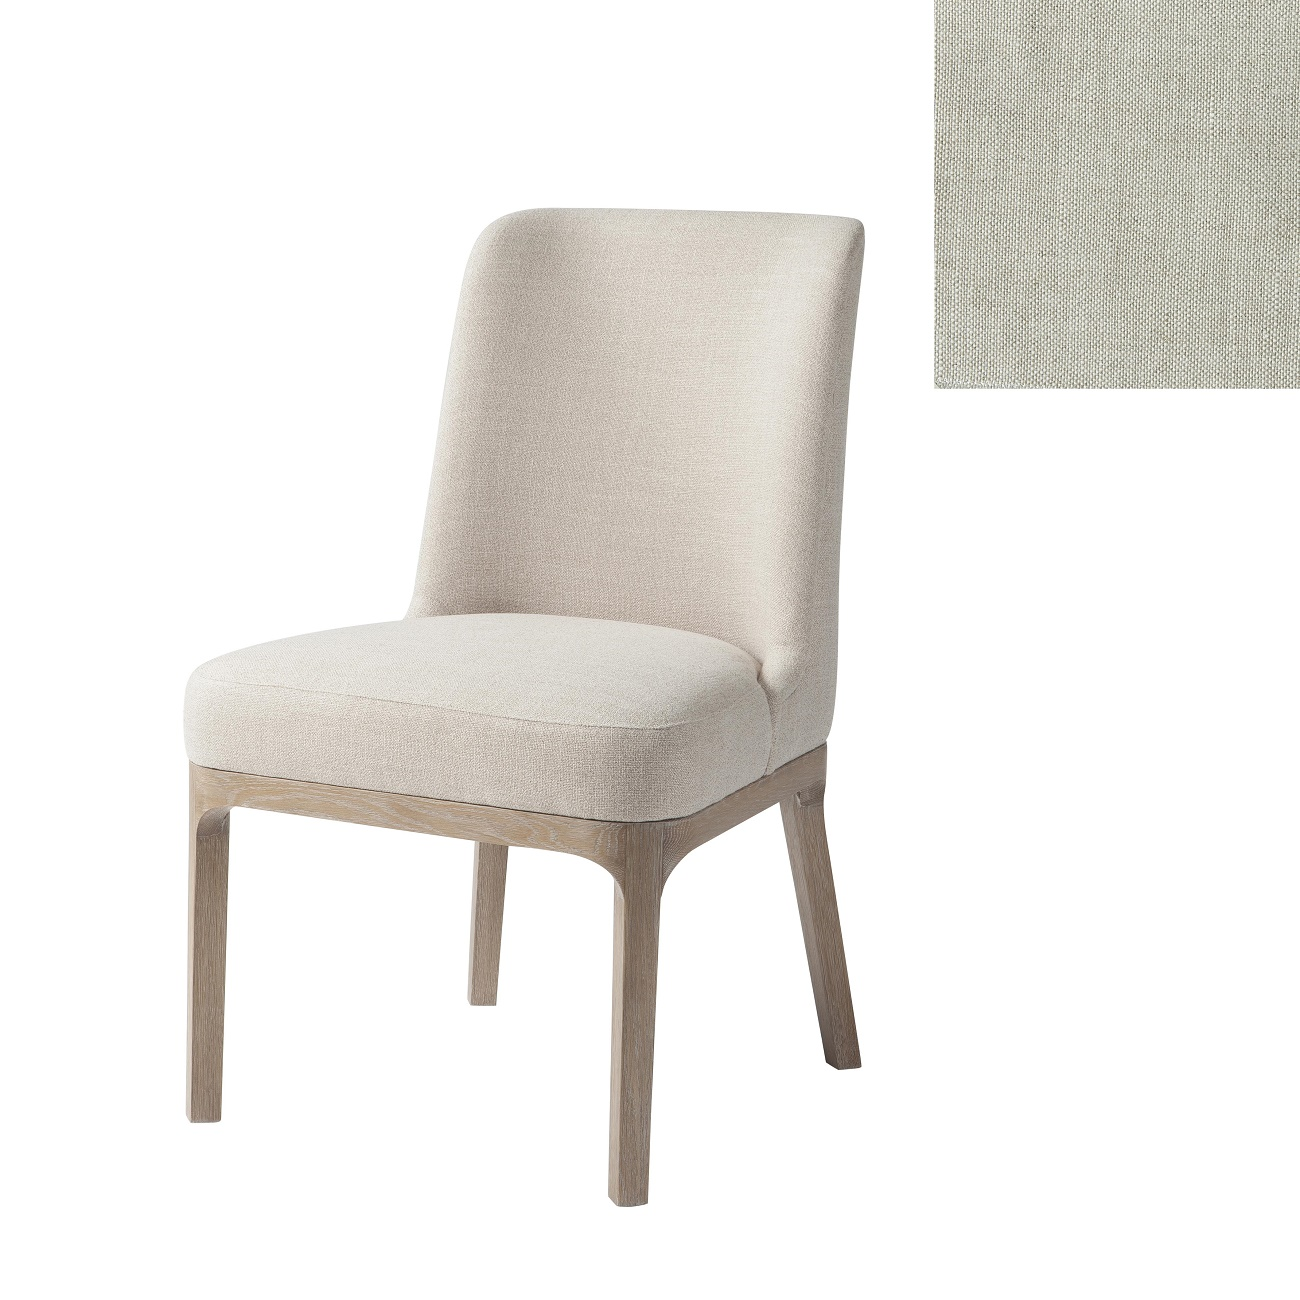 MB1009 1AQI Claremont Dining Chair Theodore Alexander